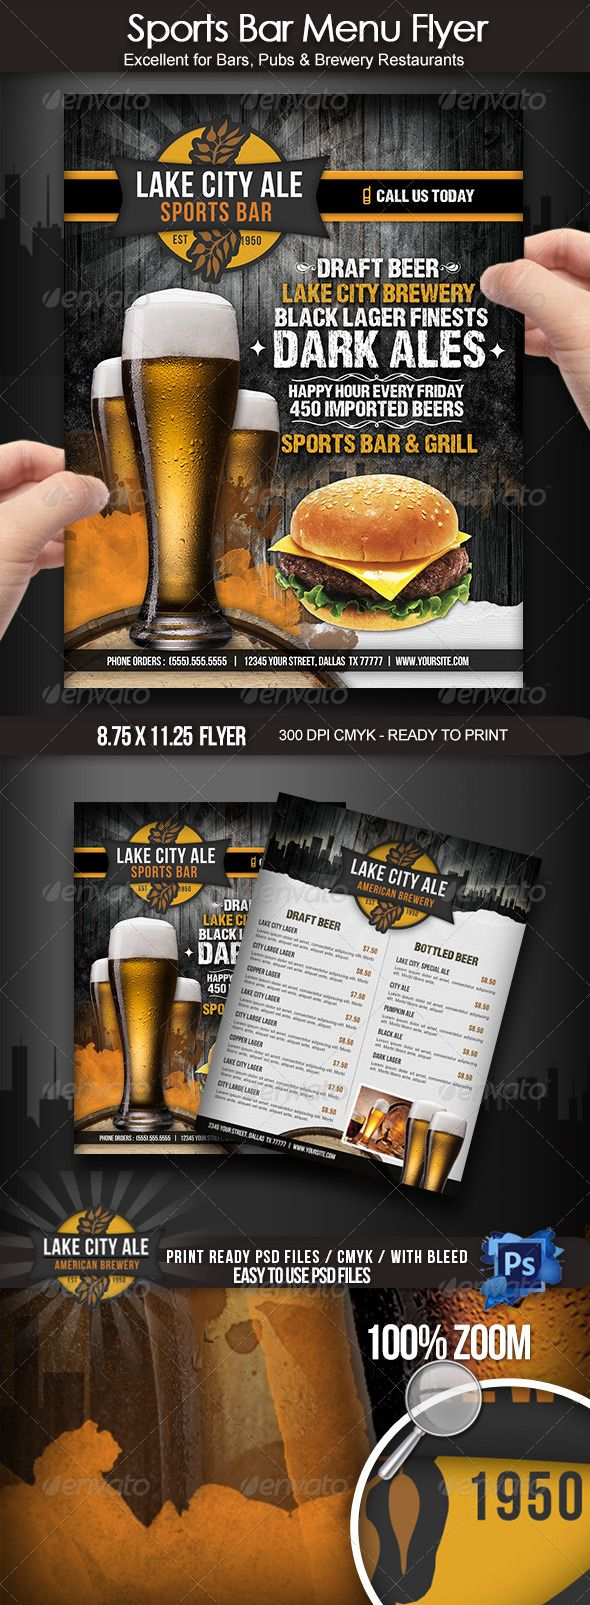 Sports Bar Menu Flyer - Restaurant Flyers